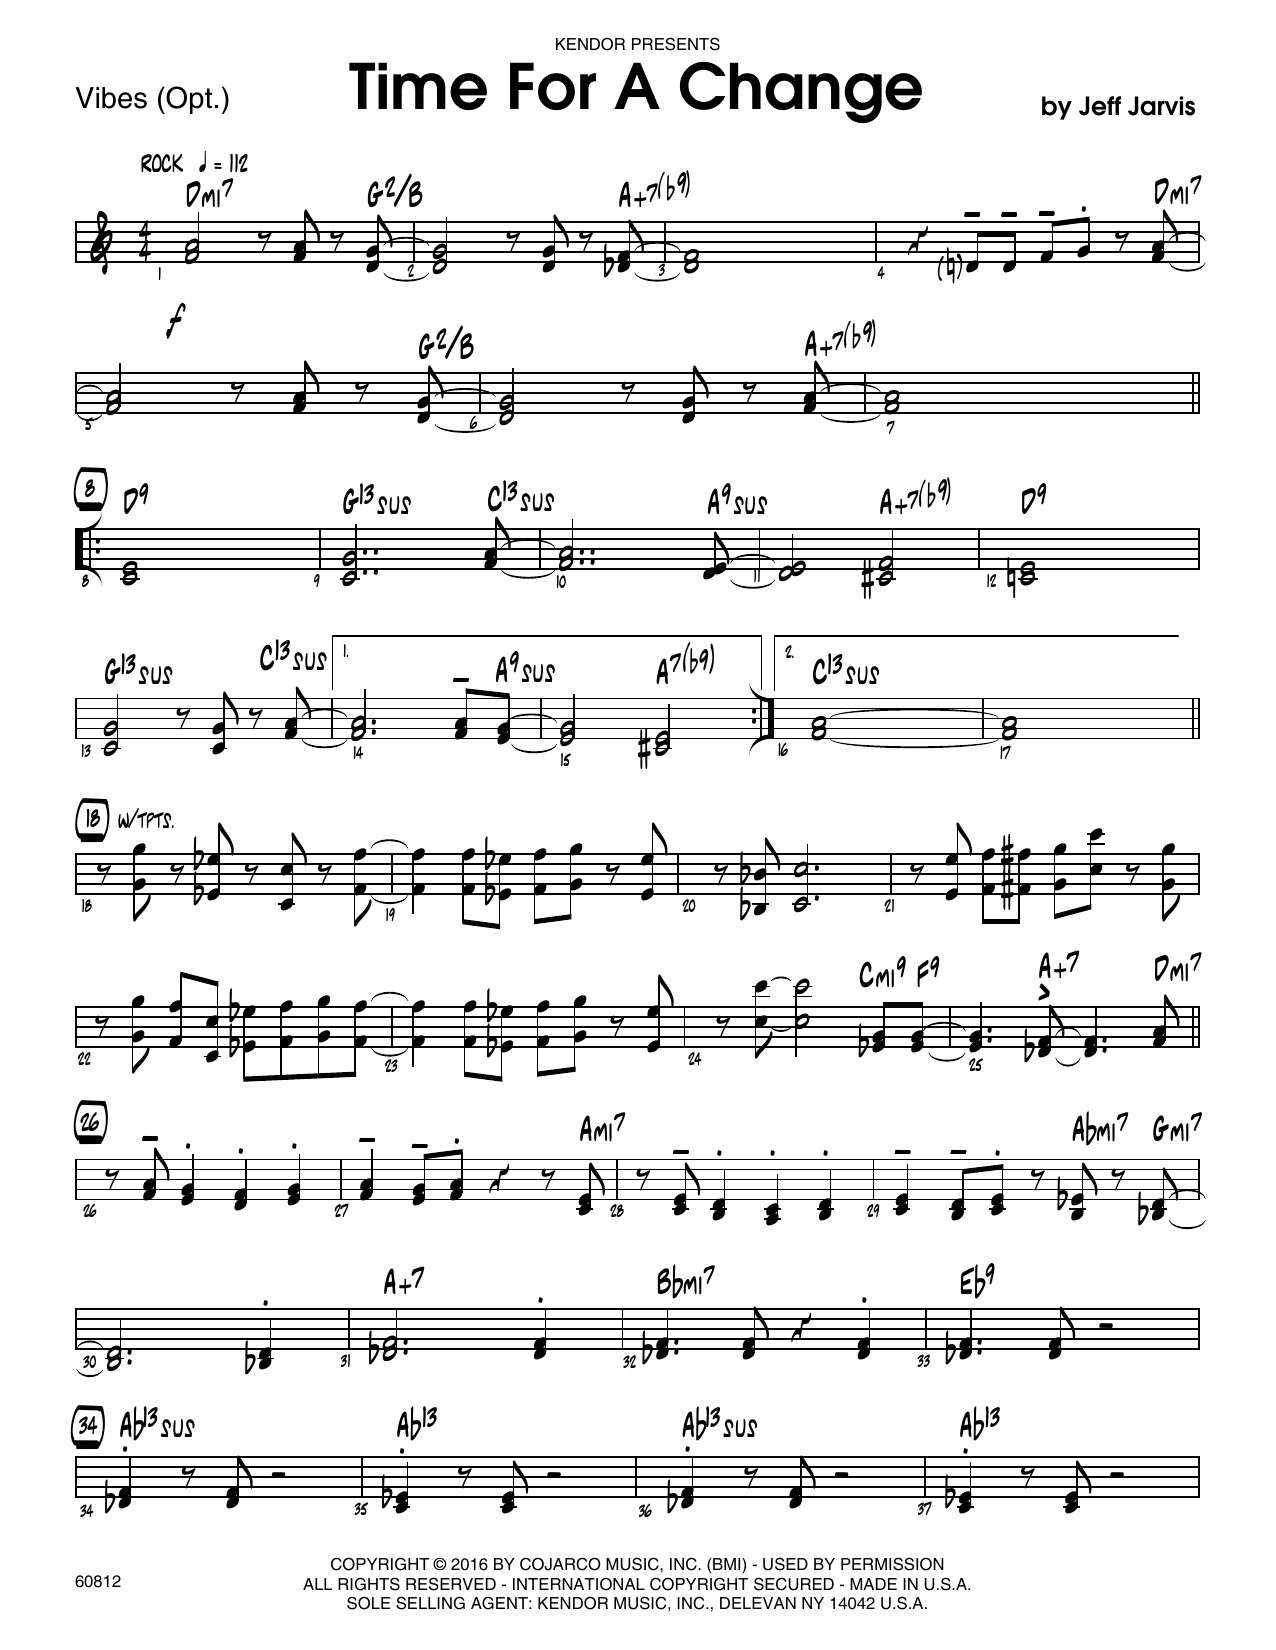 Time For A Change - Vibes Sheet Music